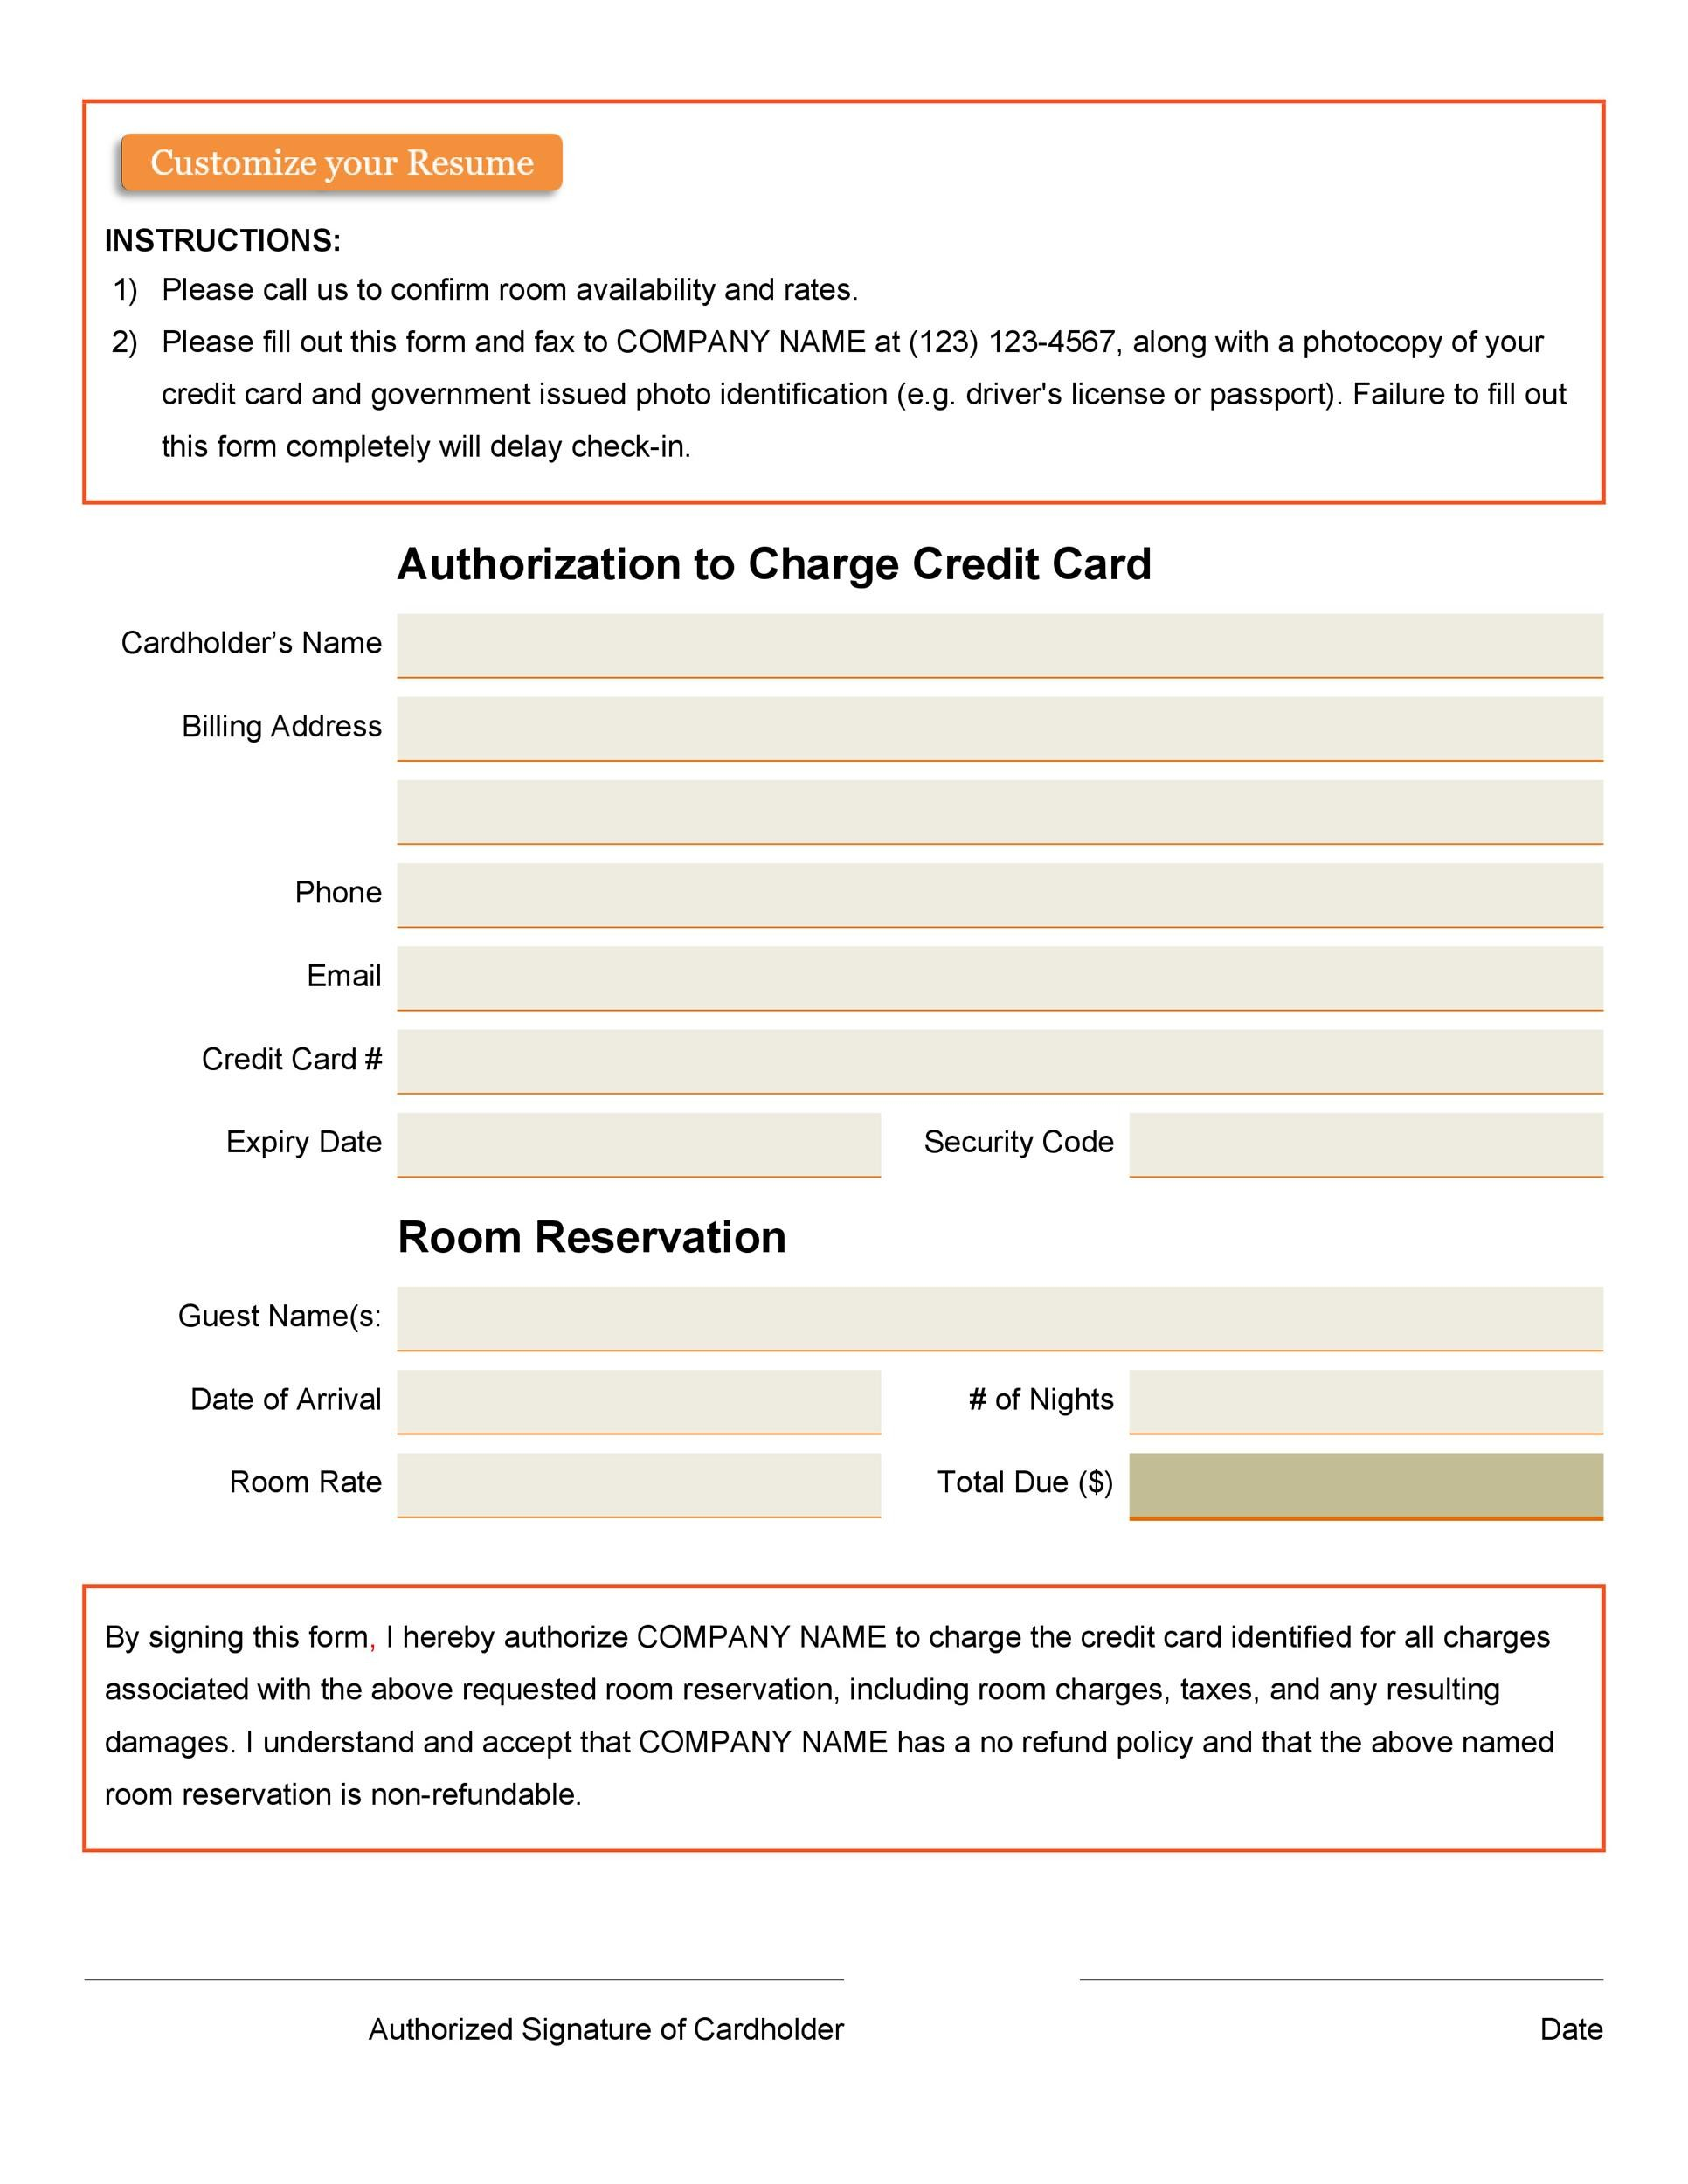 Free credit card authorization form template 37